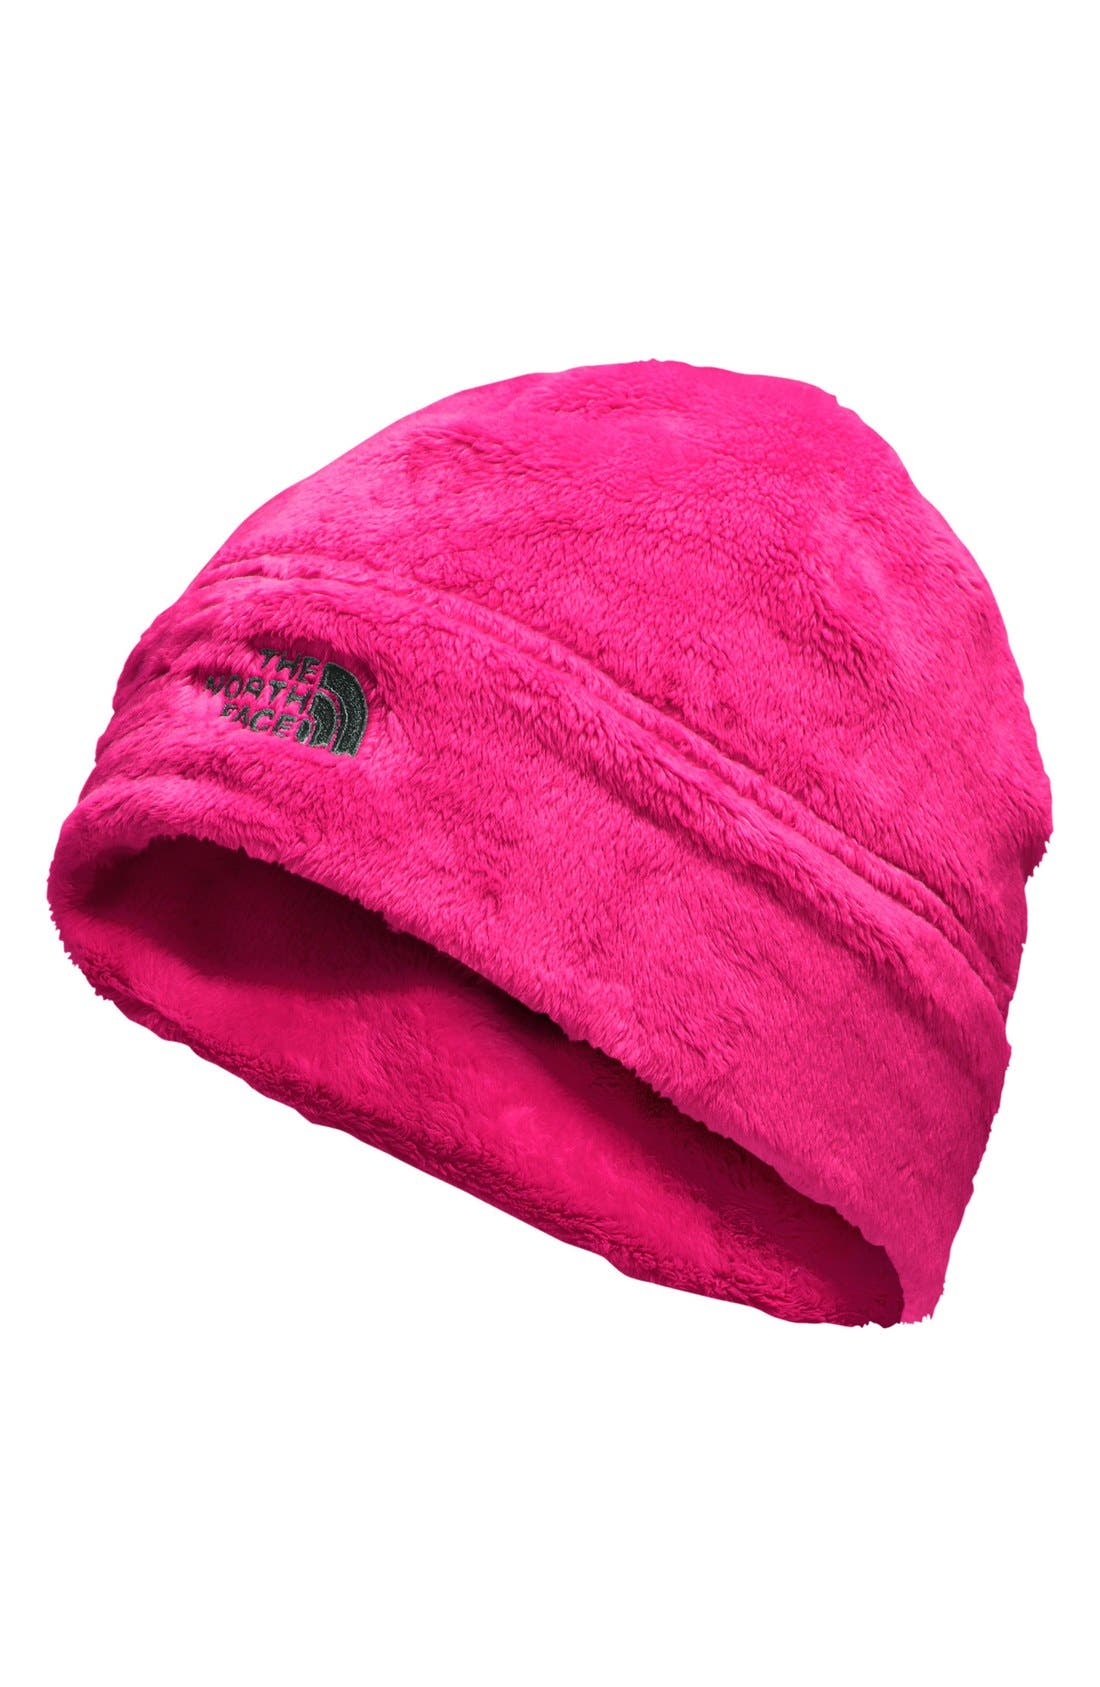 Alternate Image 1 Selected - The North Face 'Denali' Thermal Fleece Beanie